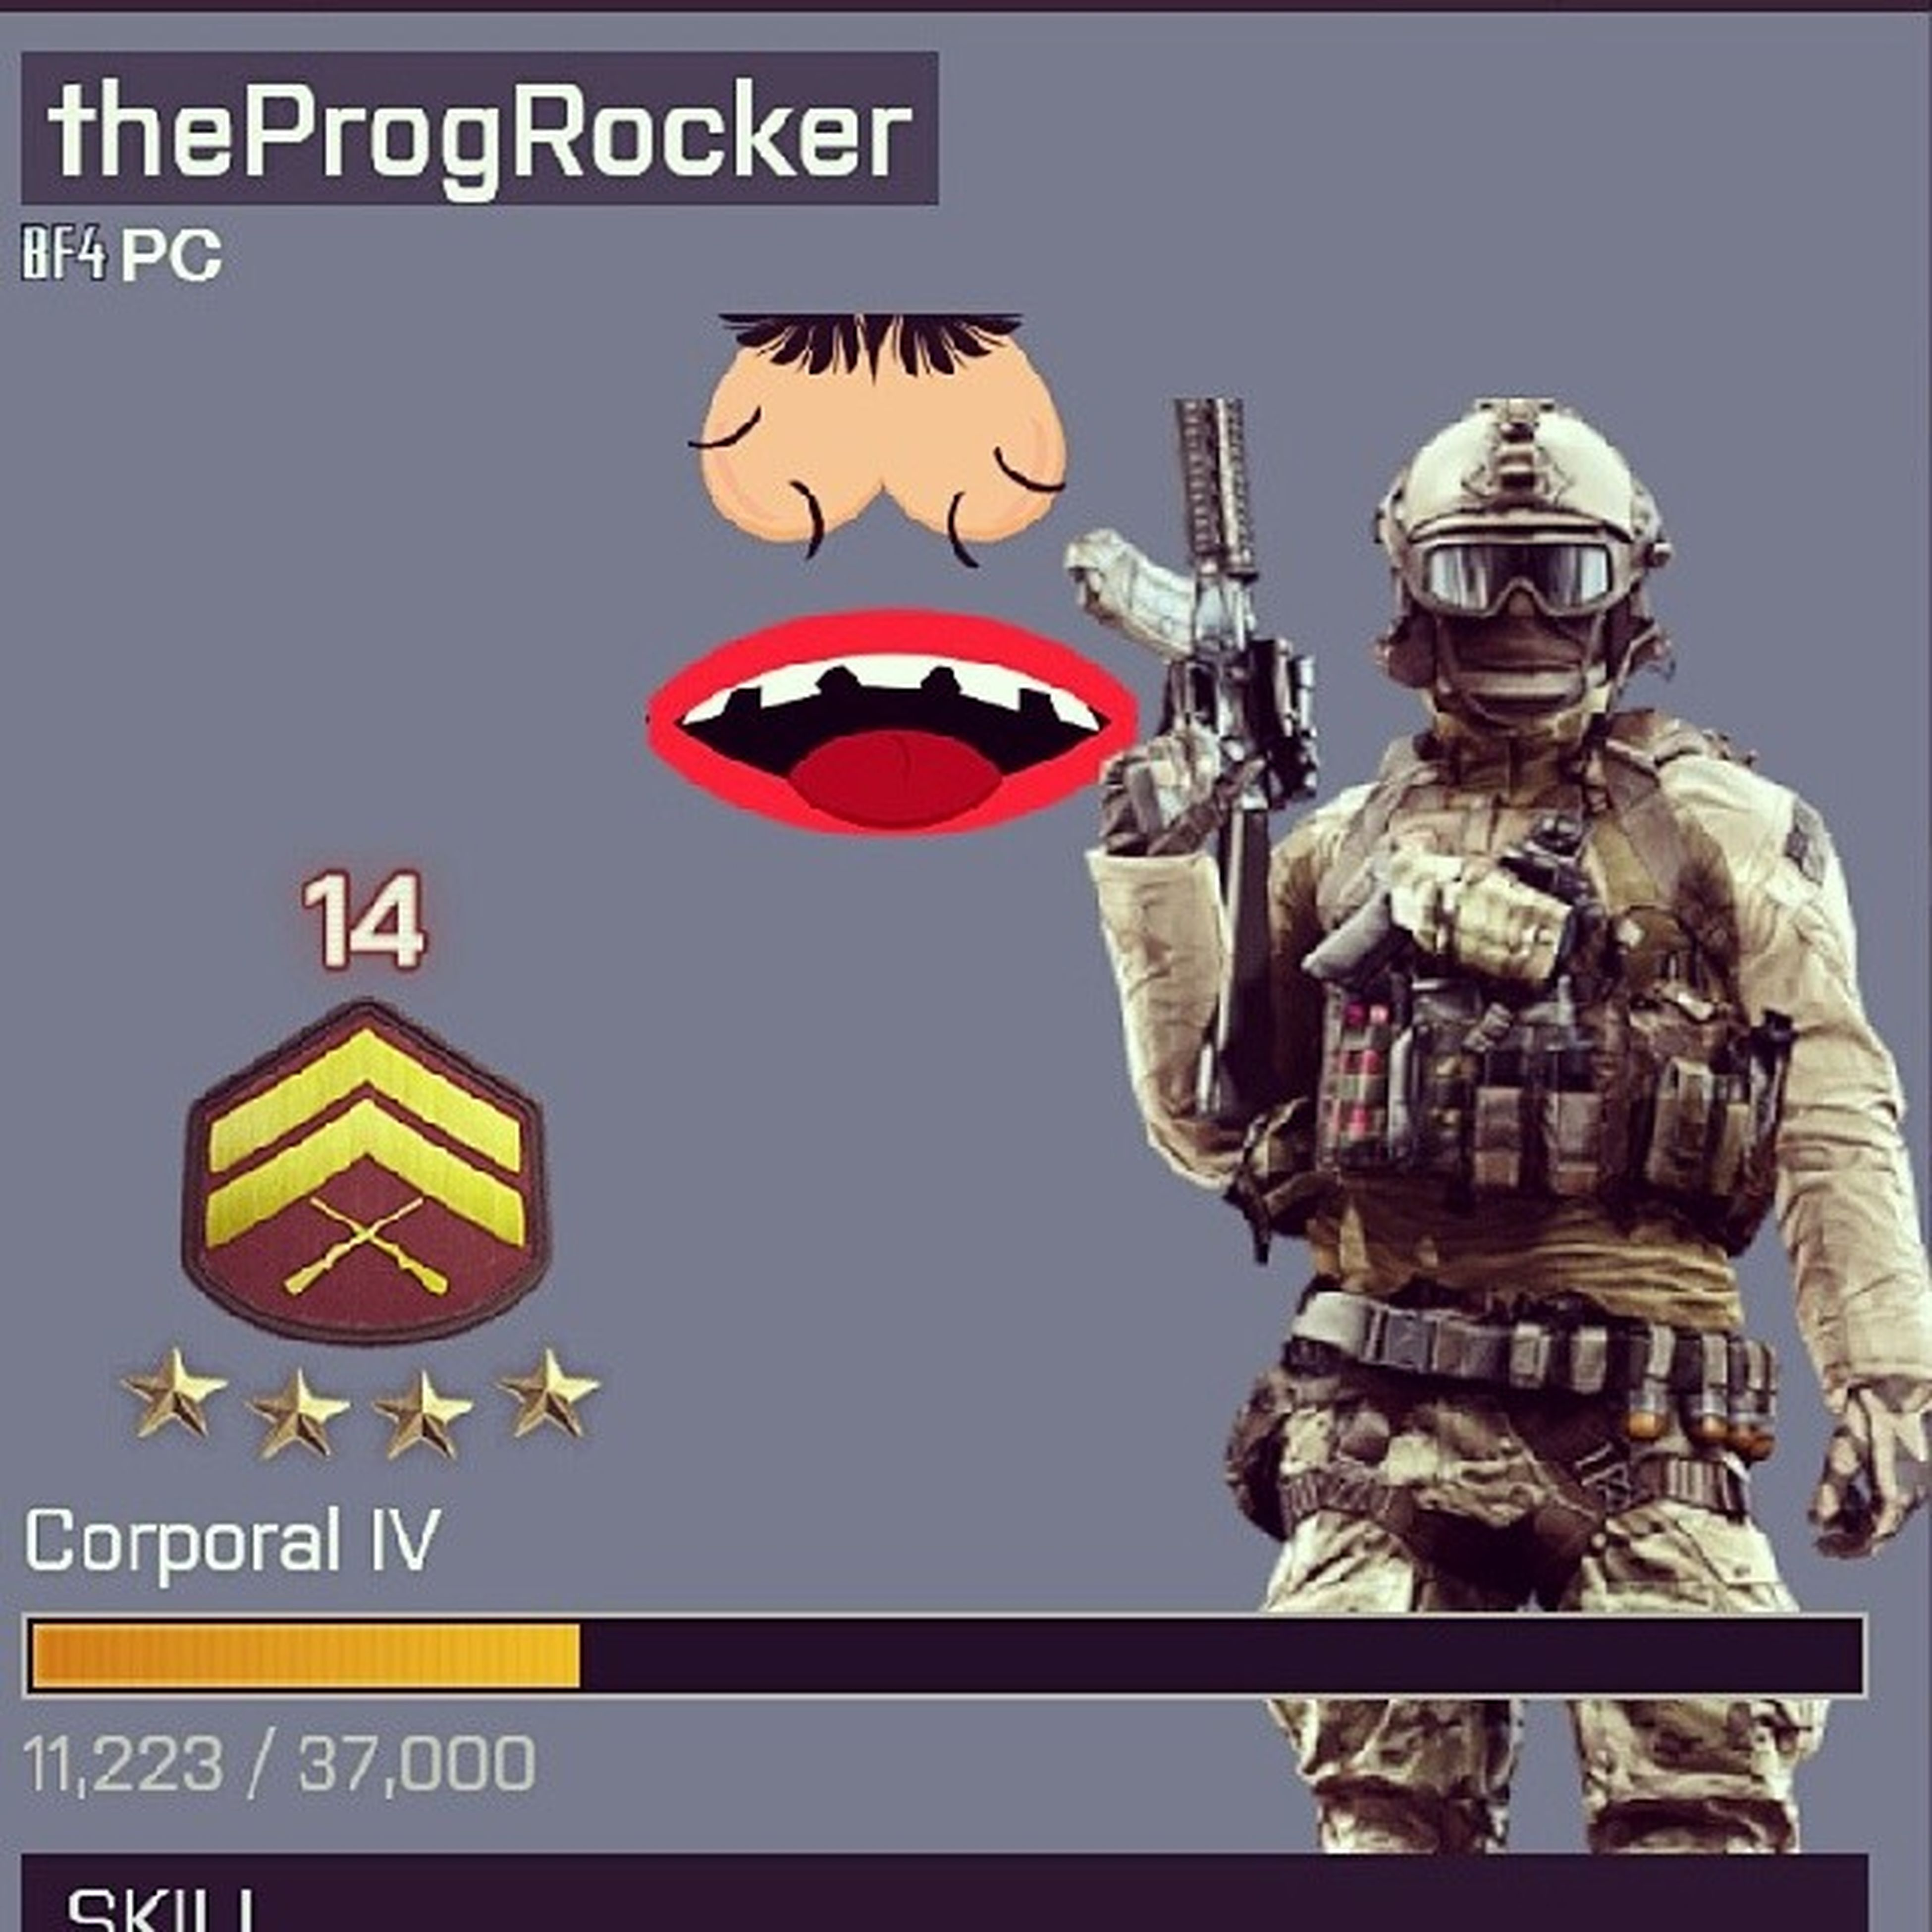 Come at me bro Tags Bf4 Tags Dftb Tags Battlefield4 Tags Ea Tags Dice Tags Gaming PC Tags Gamer Gimmedemtags